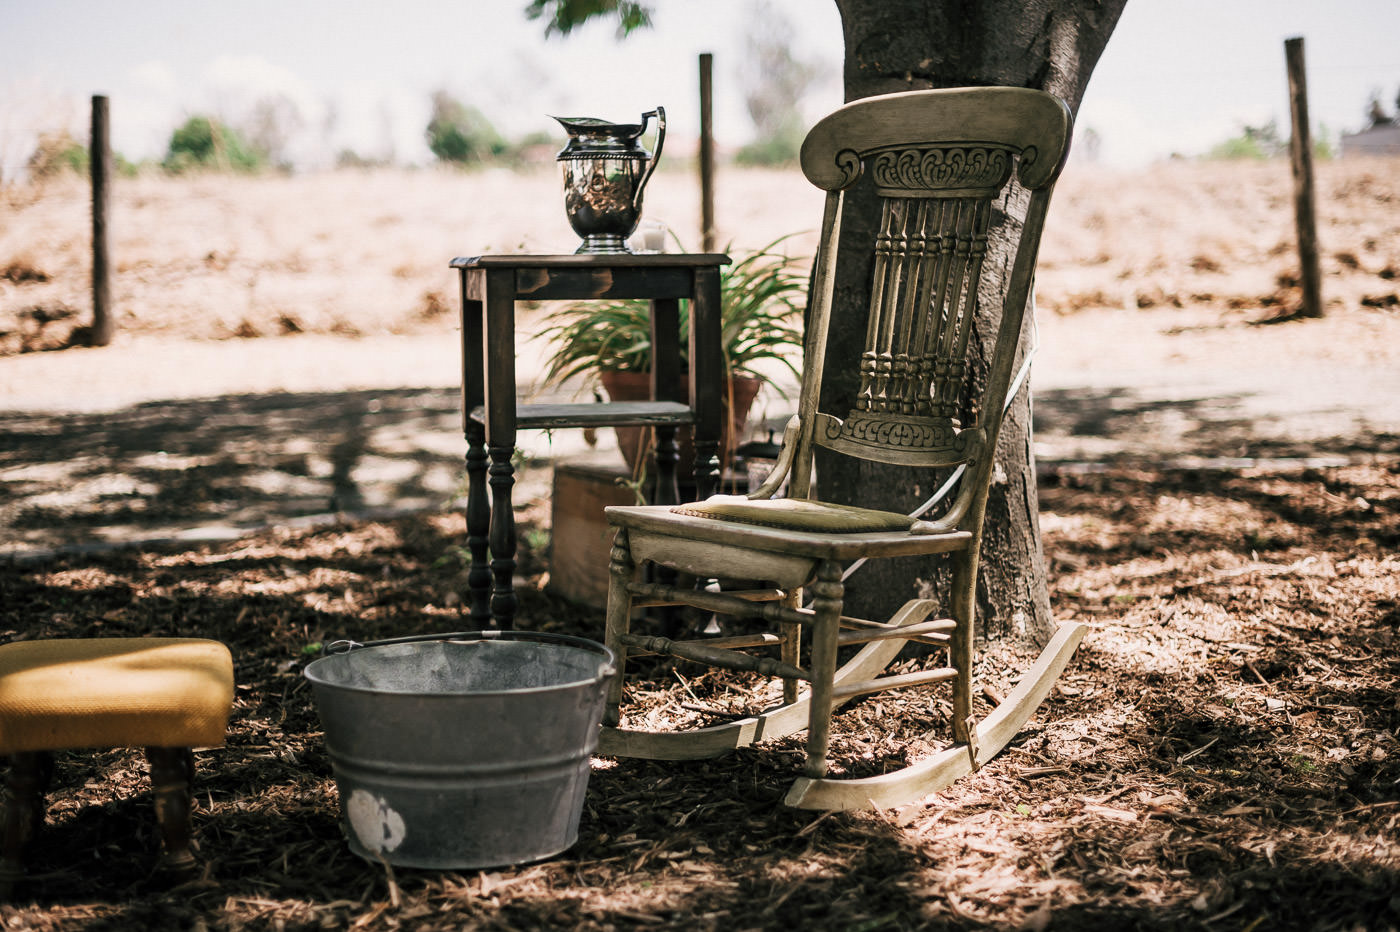 Vintage Rocking chair and metal basin for christian foot washing ceremony at Temecula wine country wedding